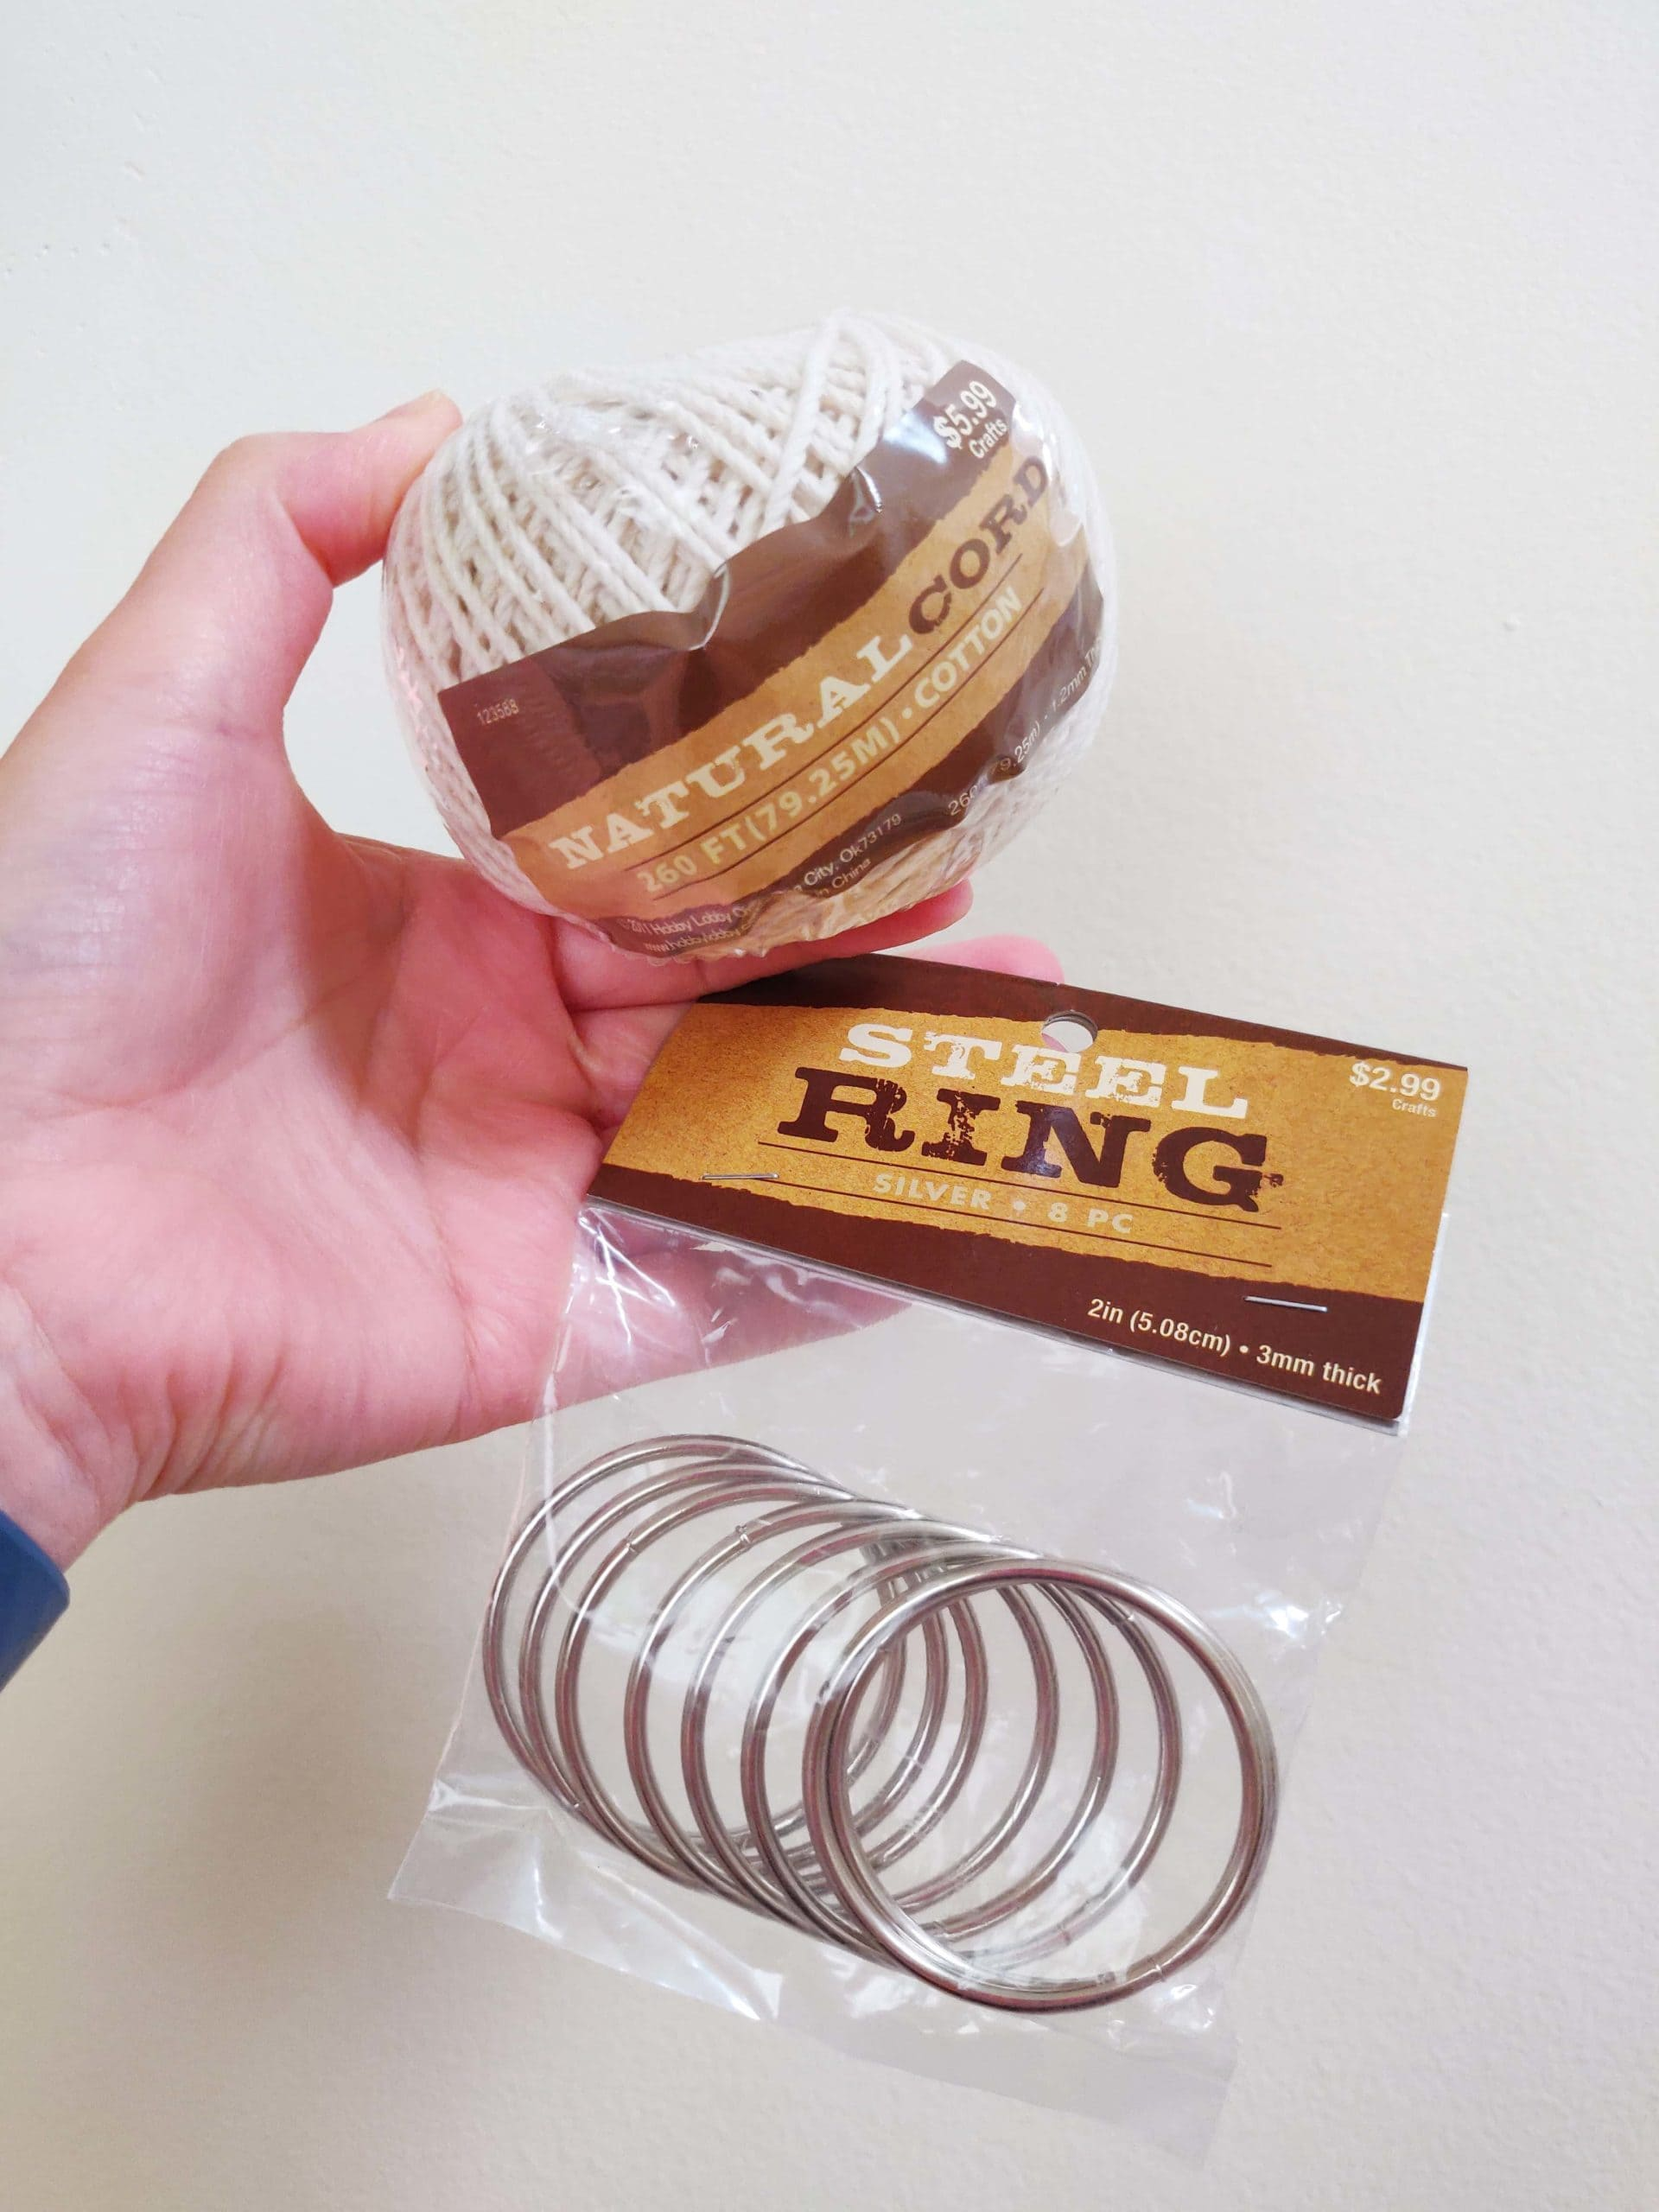 cotton natural cord and metal rings in package